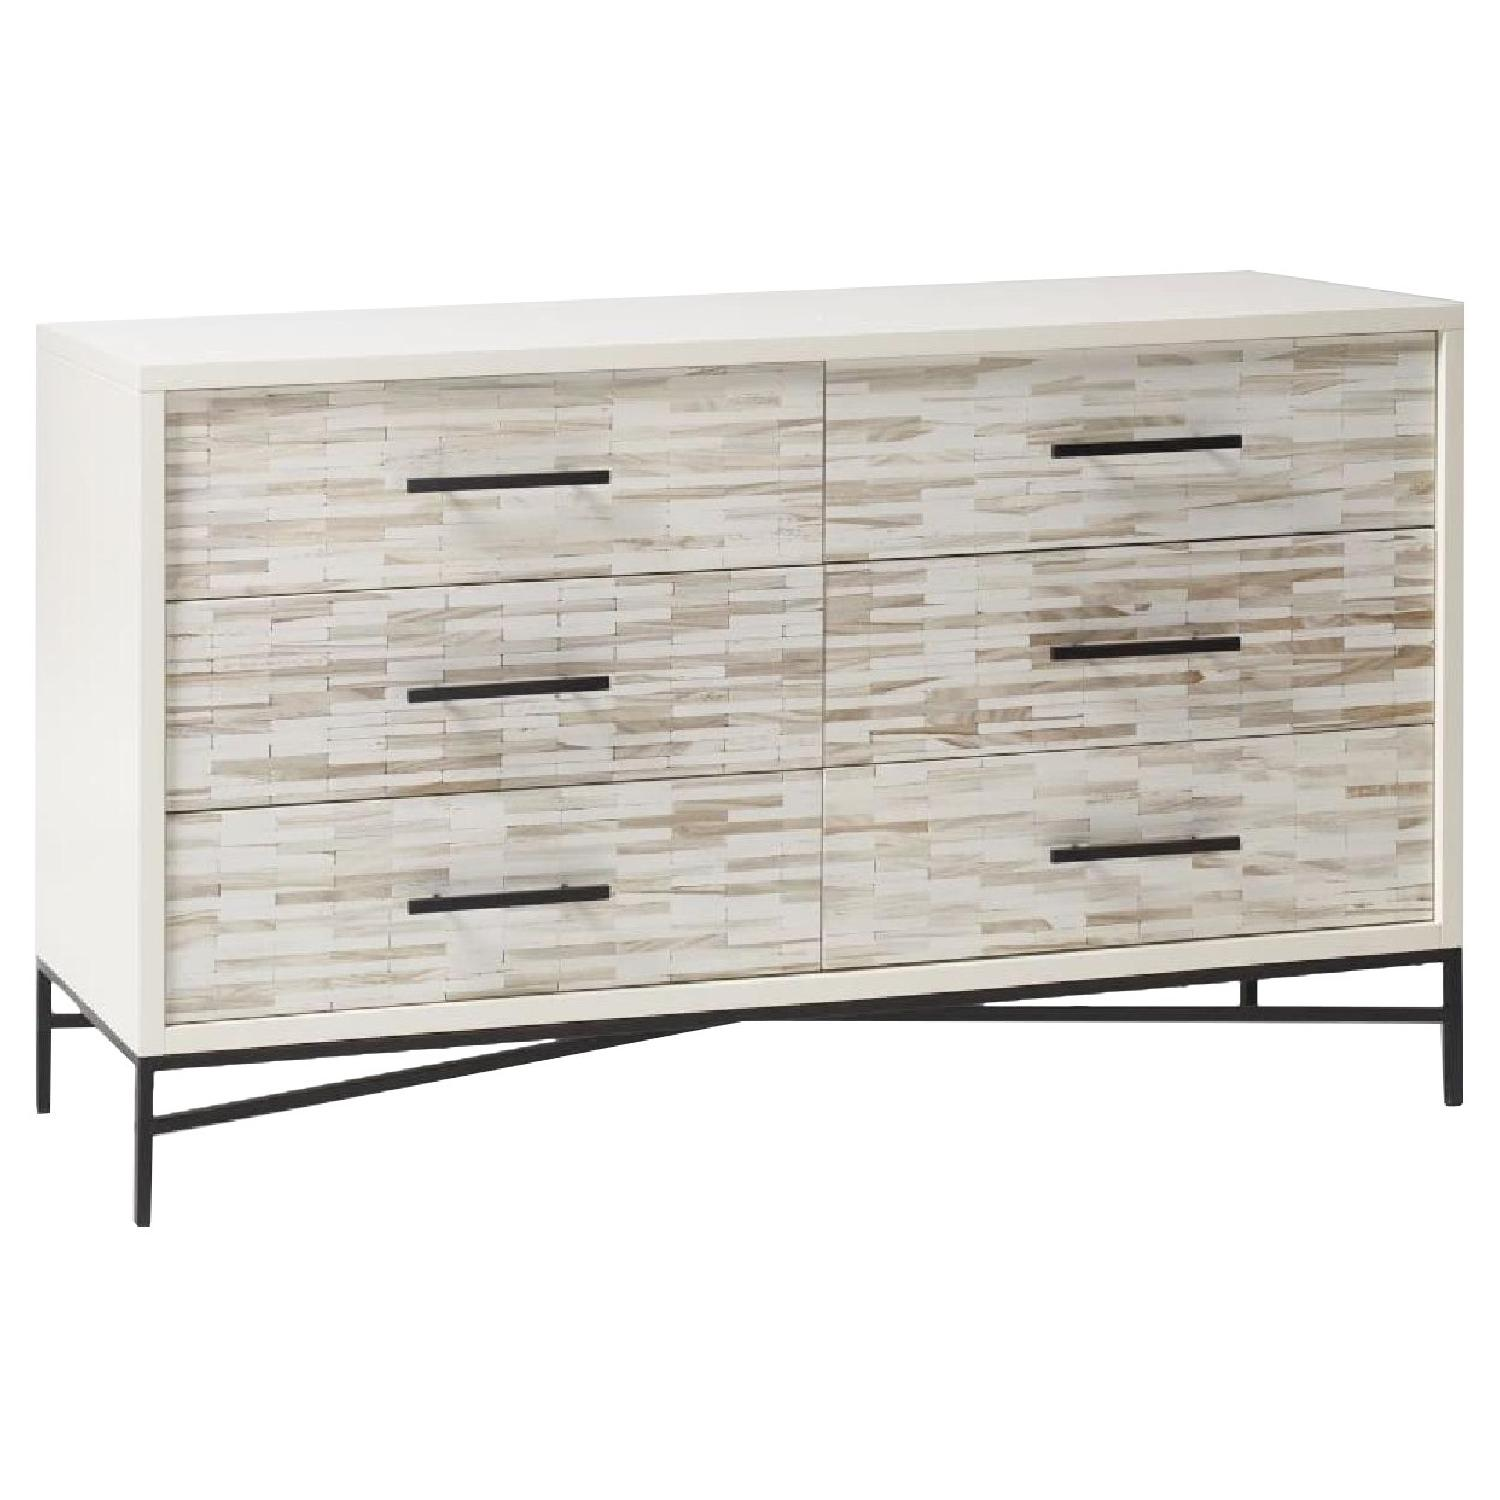 West Elm Wood Tiled 6 Drawer Dresser